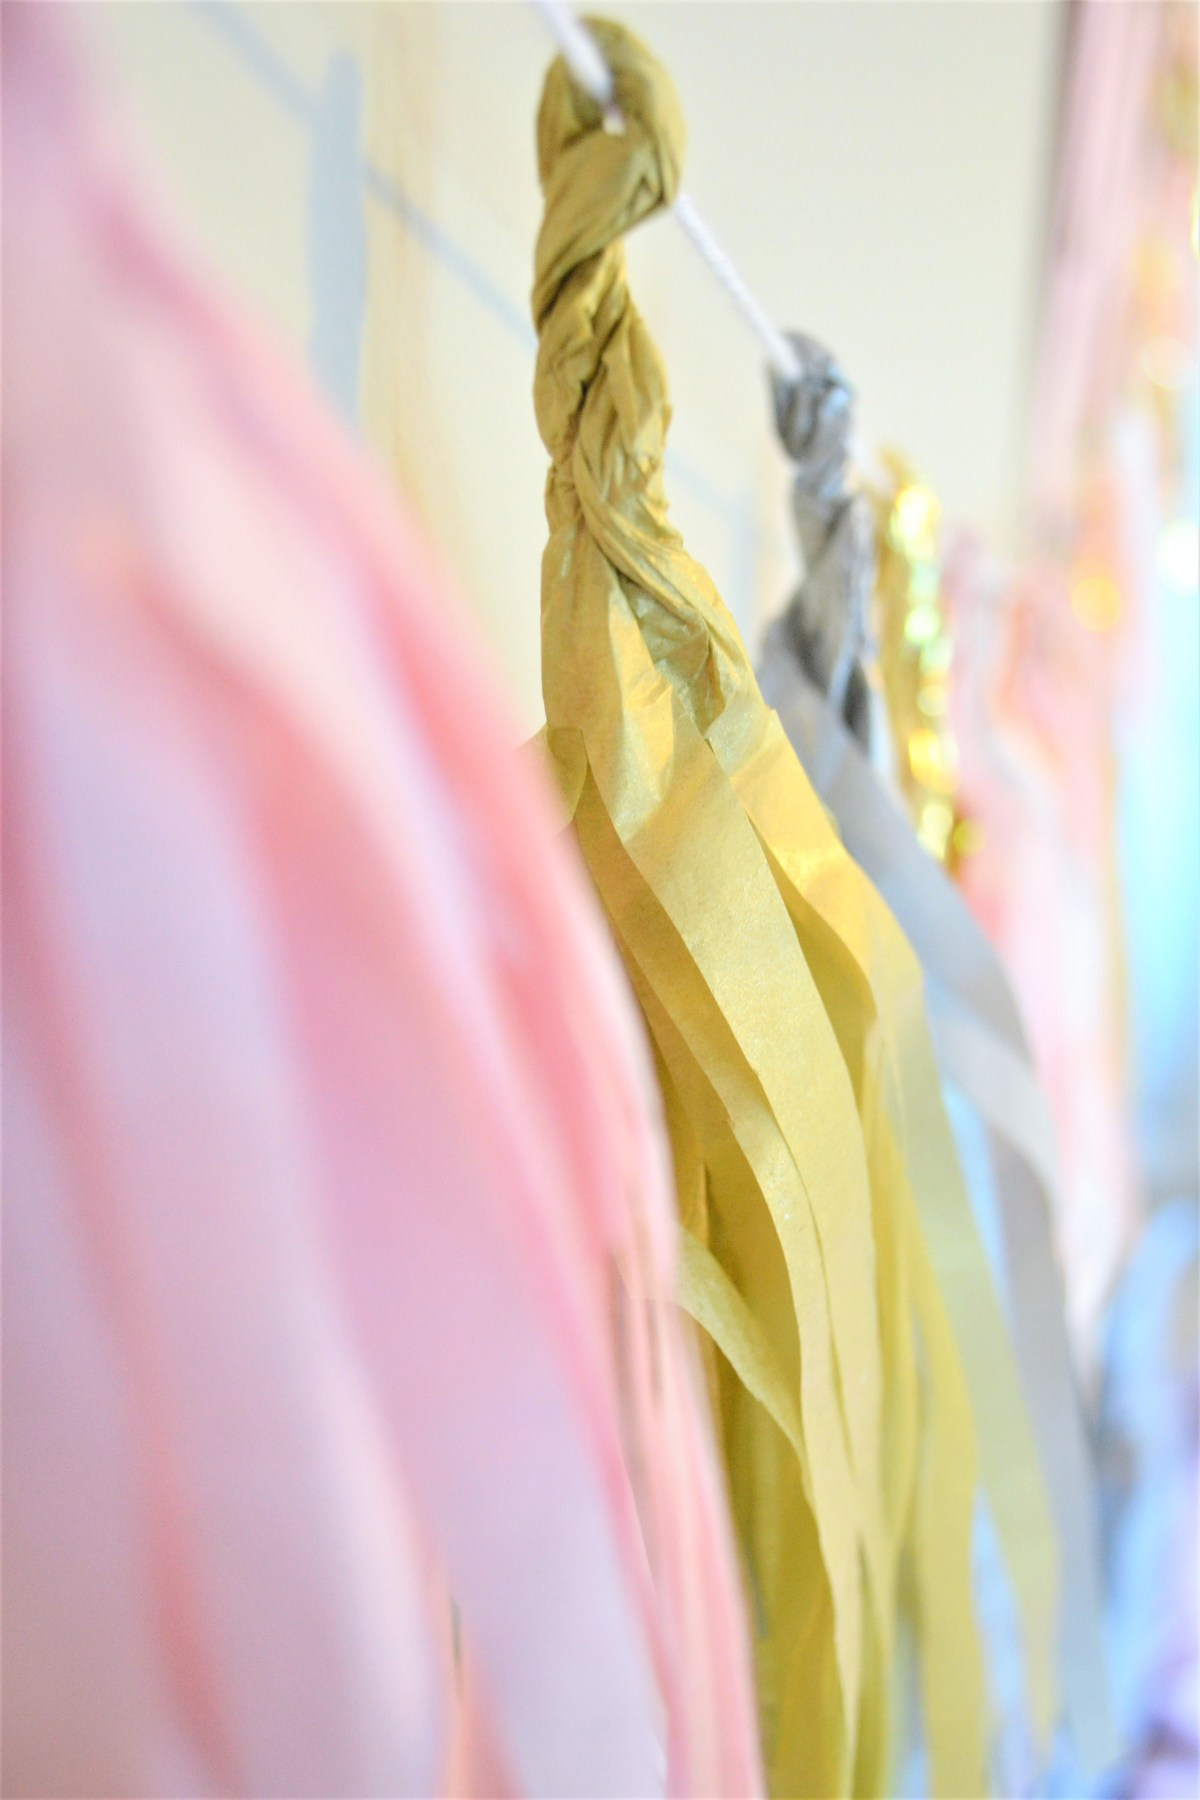 Tassel Garland Inspiration! - just twist